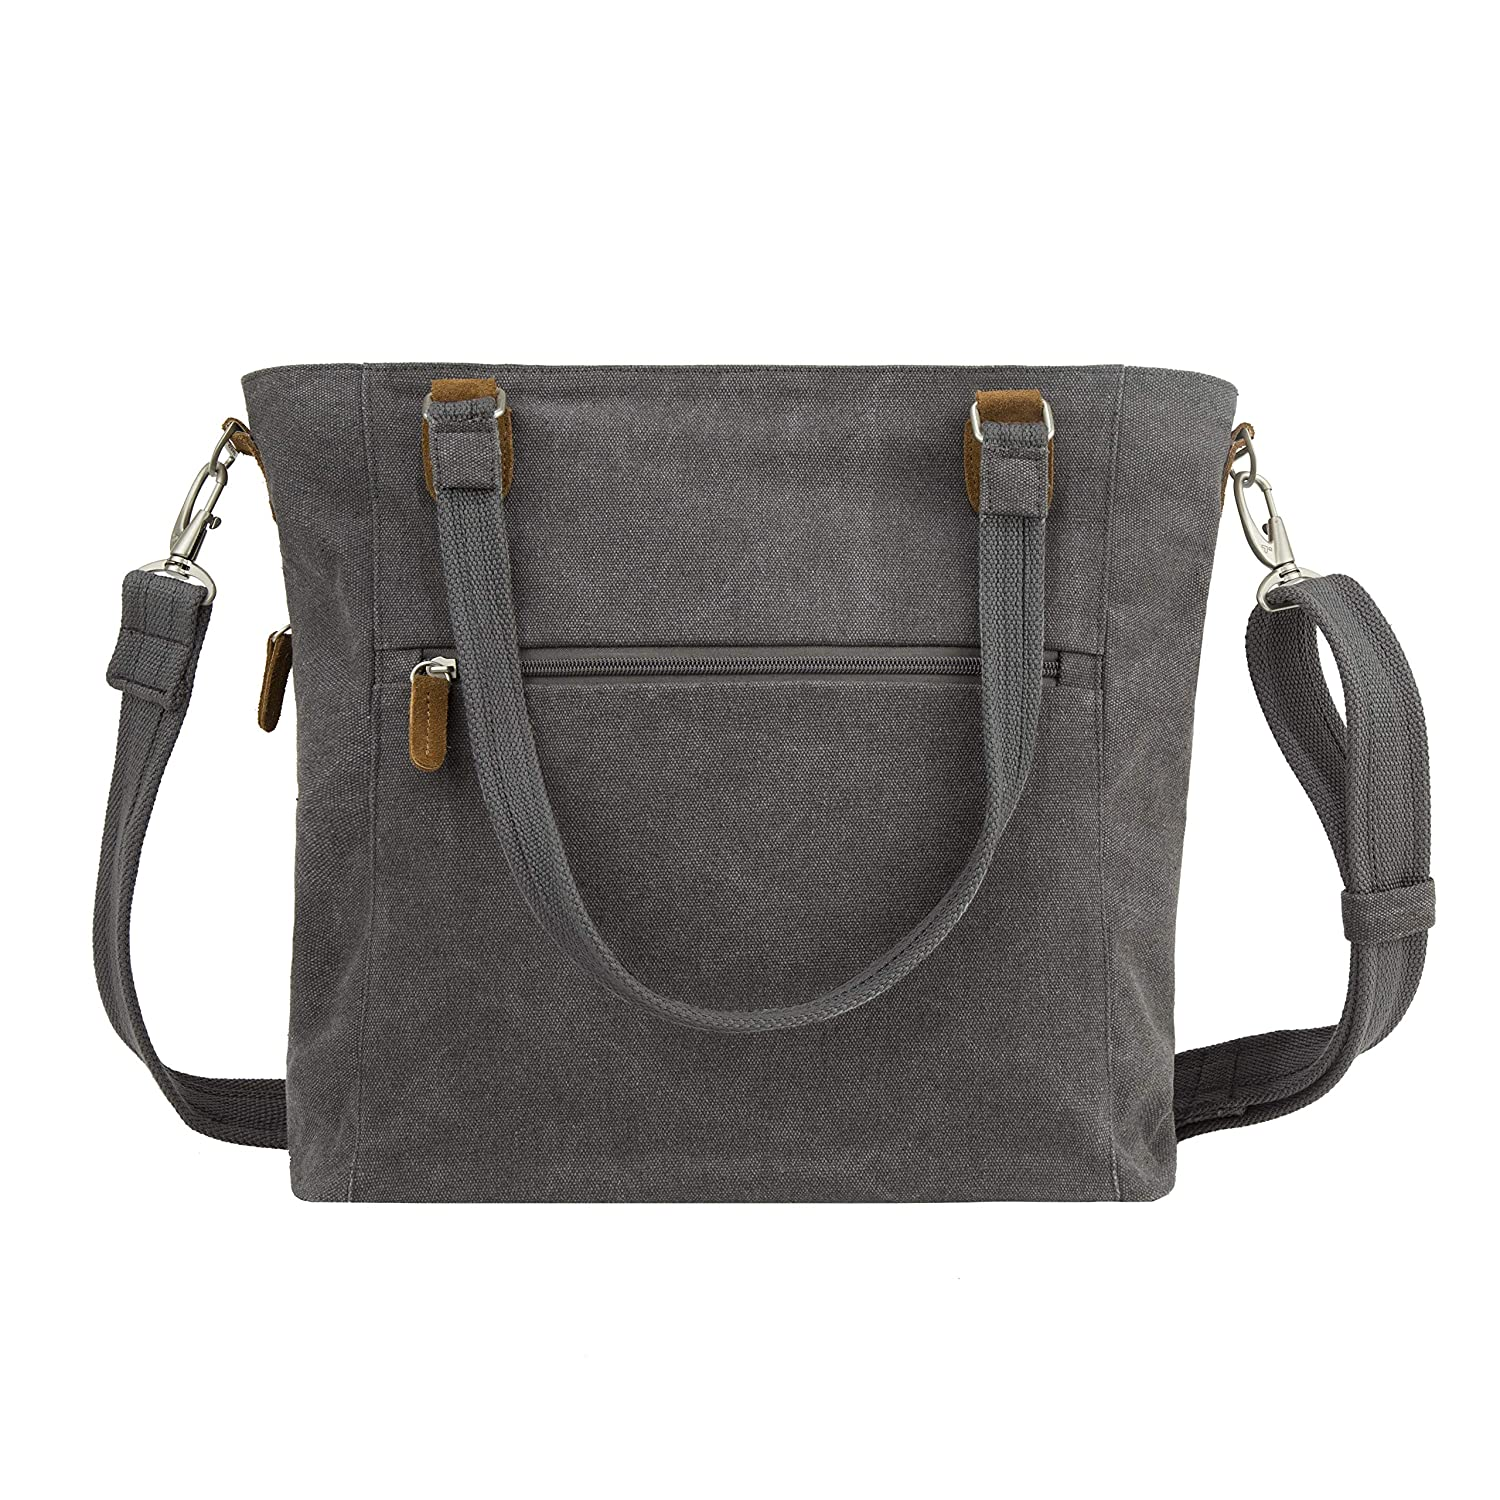 Pewter Travelon Anti-Theft Heritage Tote Bag